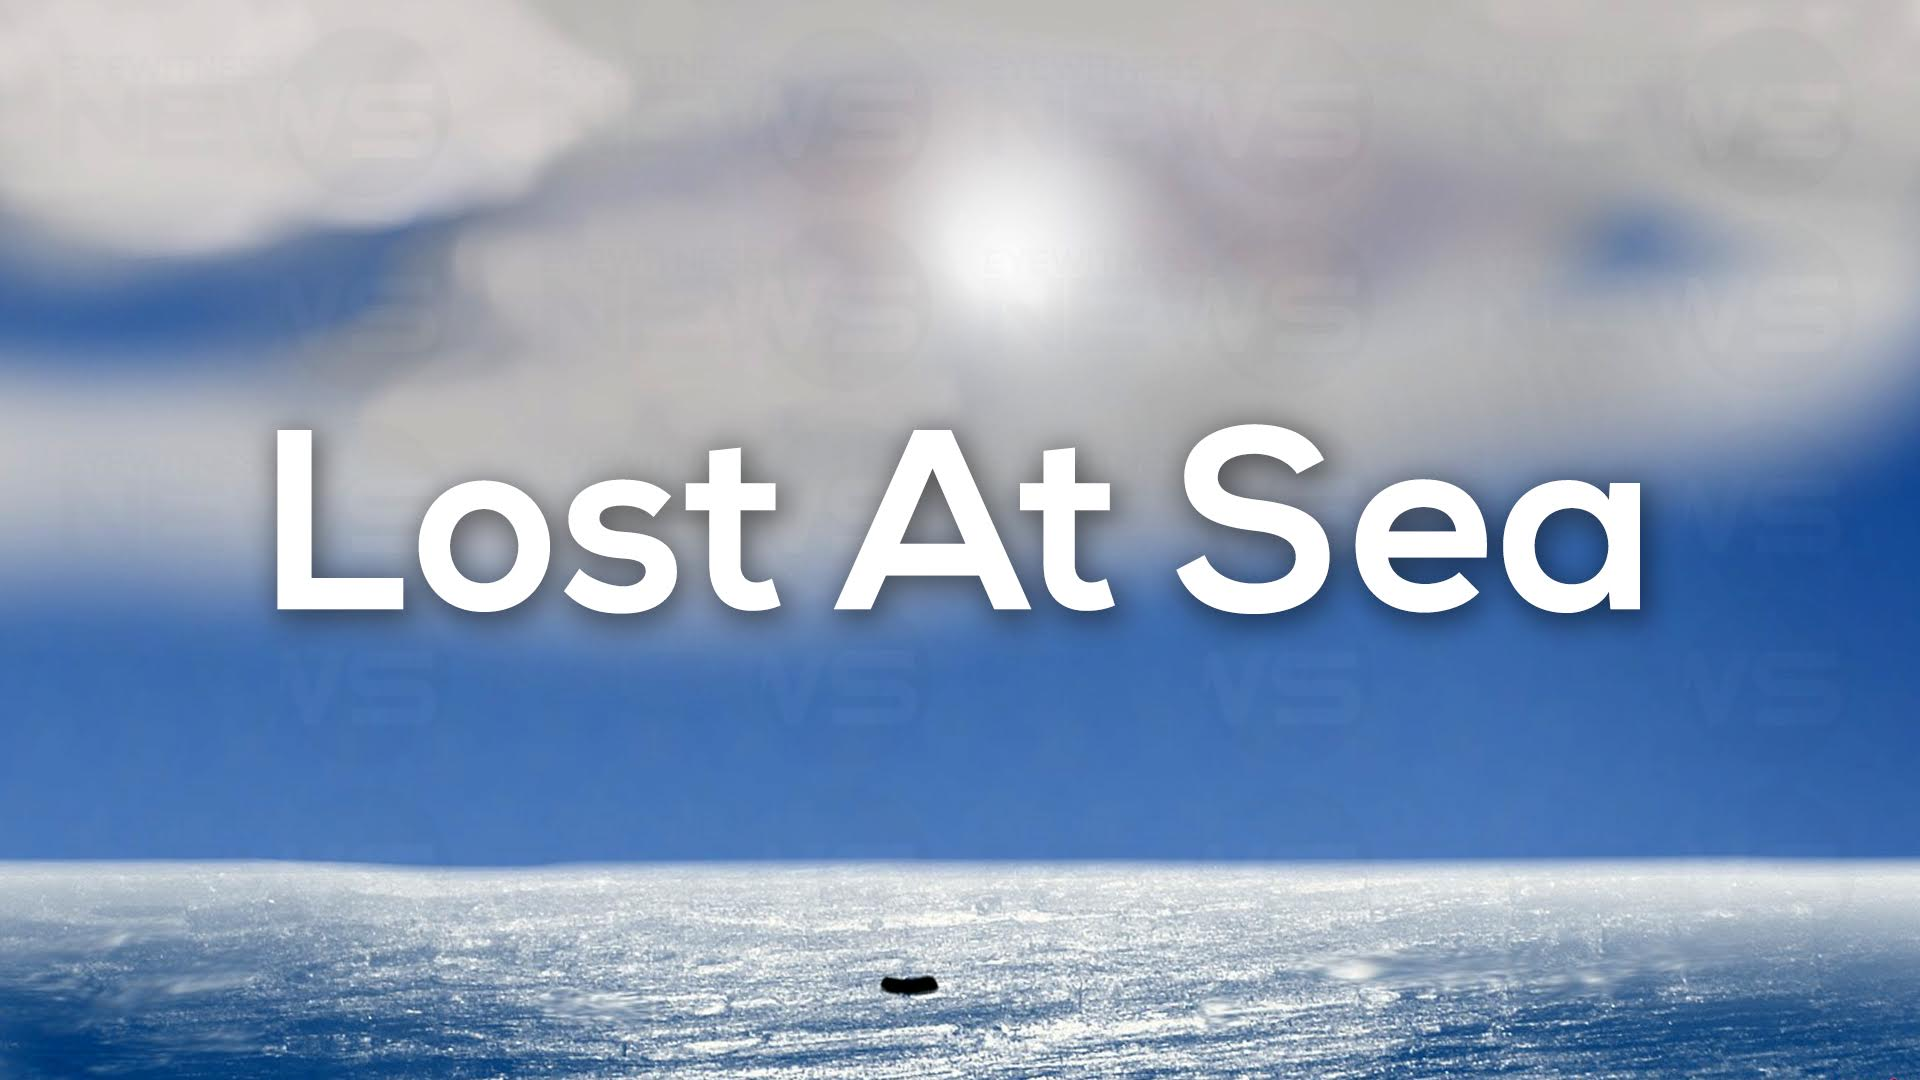 Two men lost at sea, search continues